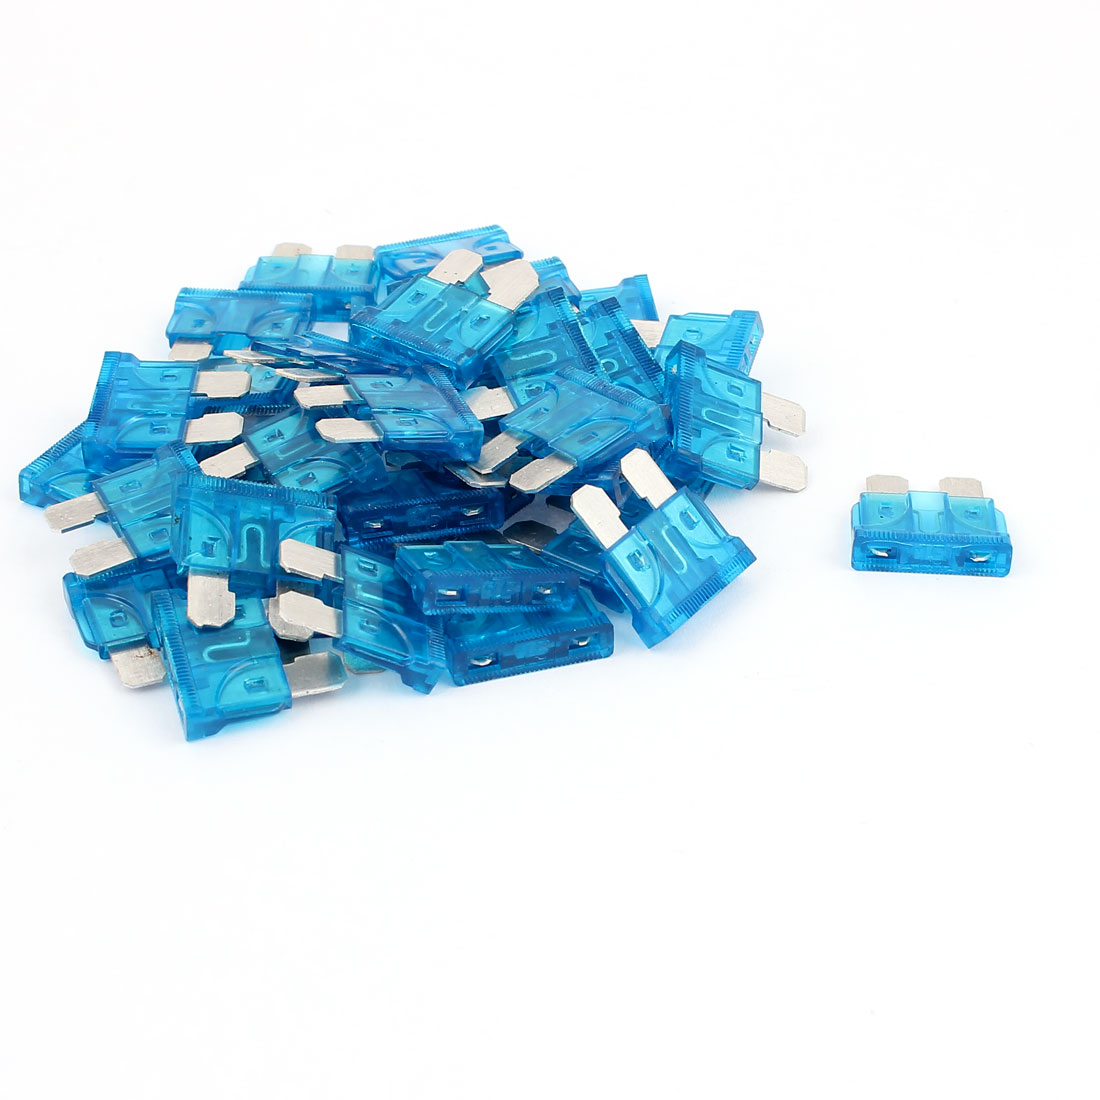 40pcs Blue 15A Plastic House Mini Blade Fuse for Auto Car Truck Motorcycle SUV